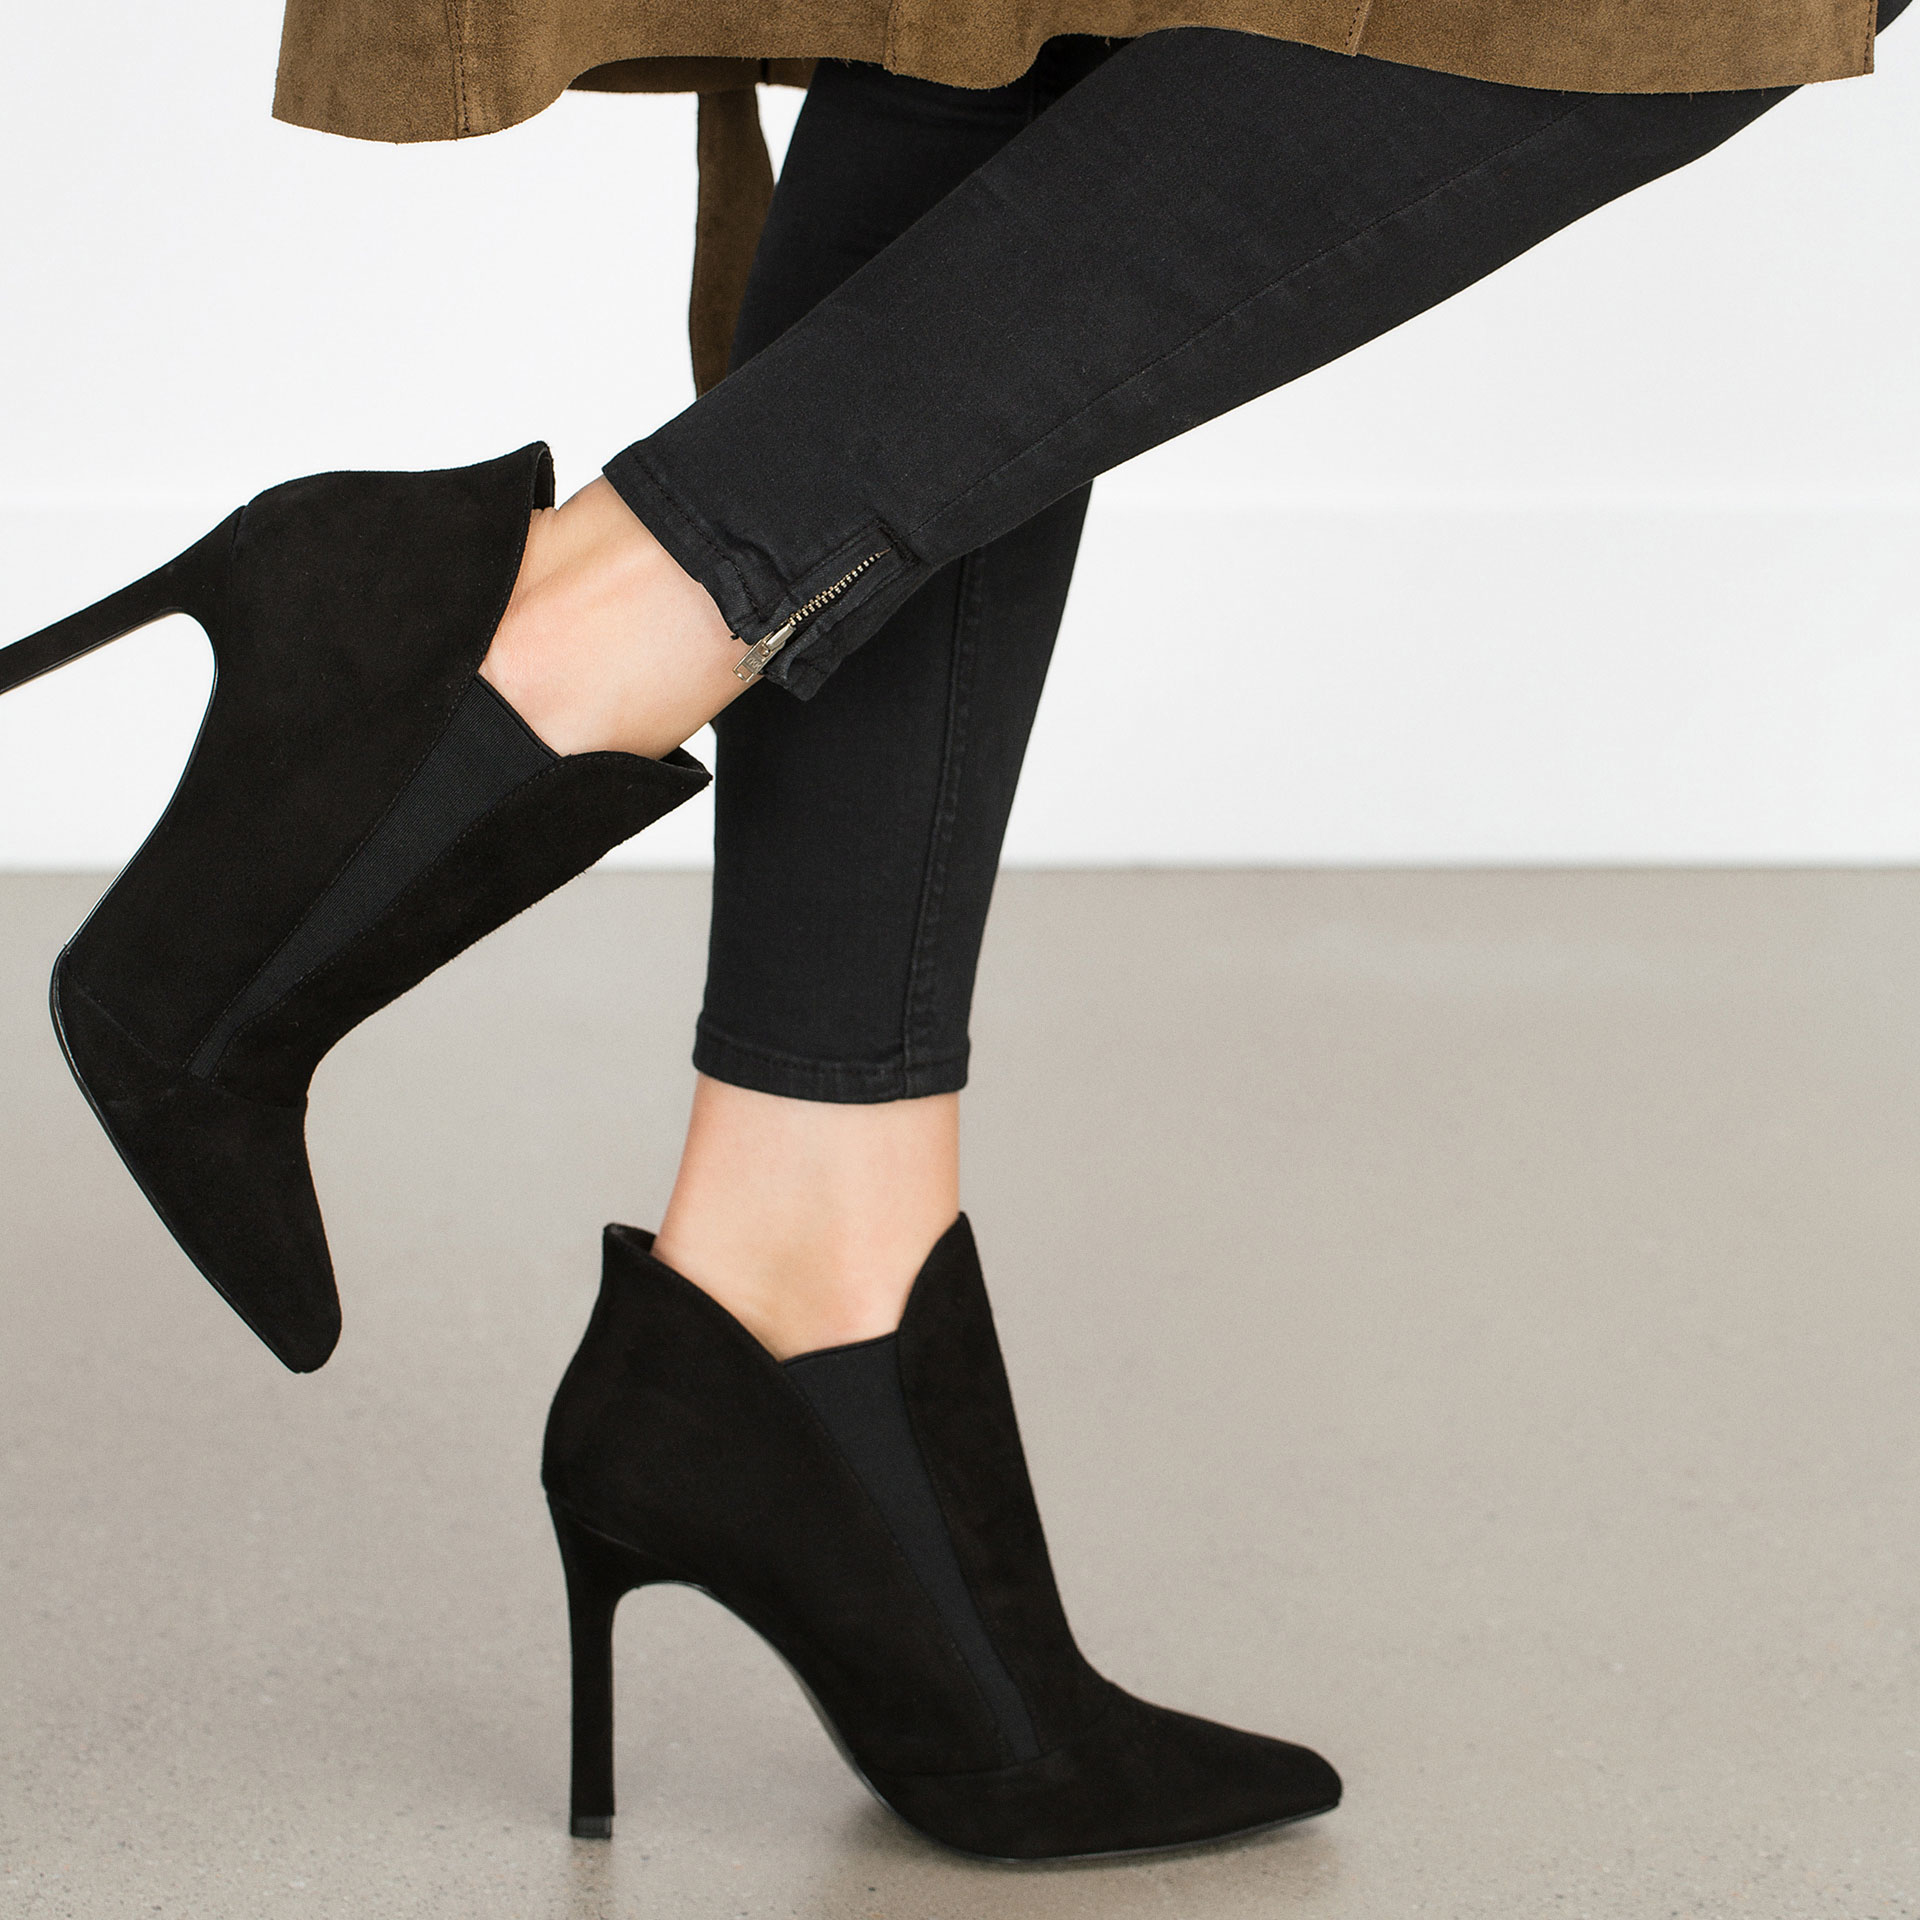 Zara High Heel Stretch Leather Ankle Boot in Black | Lyst